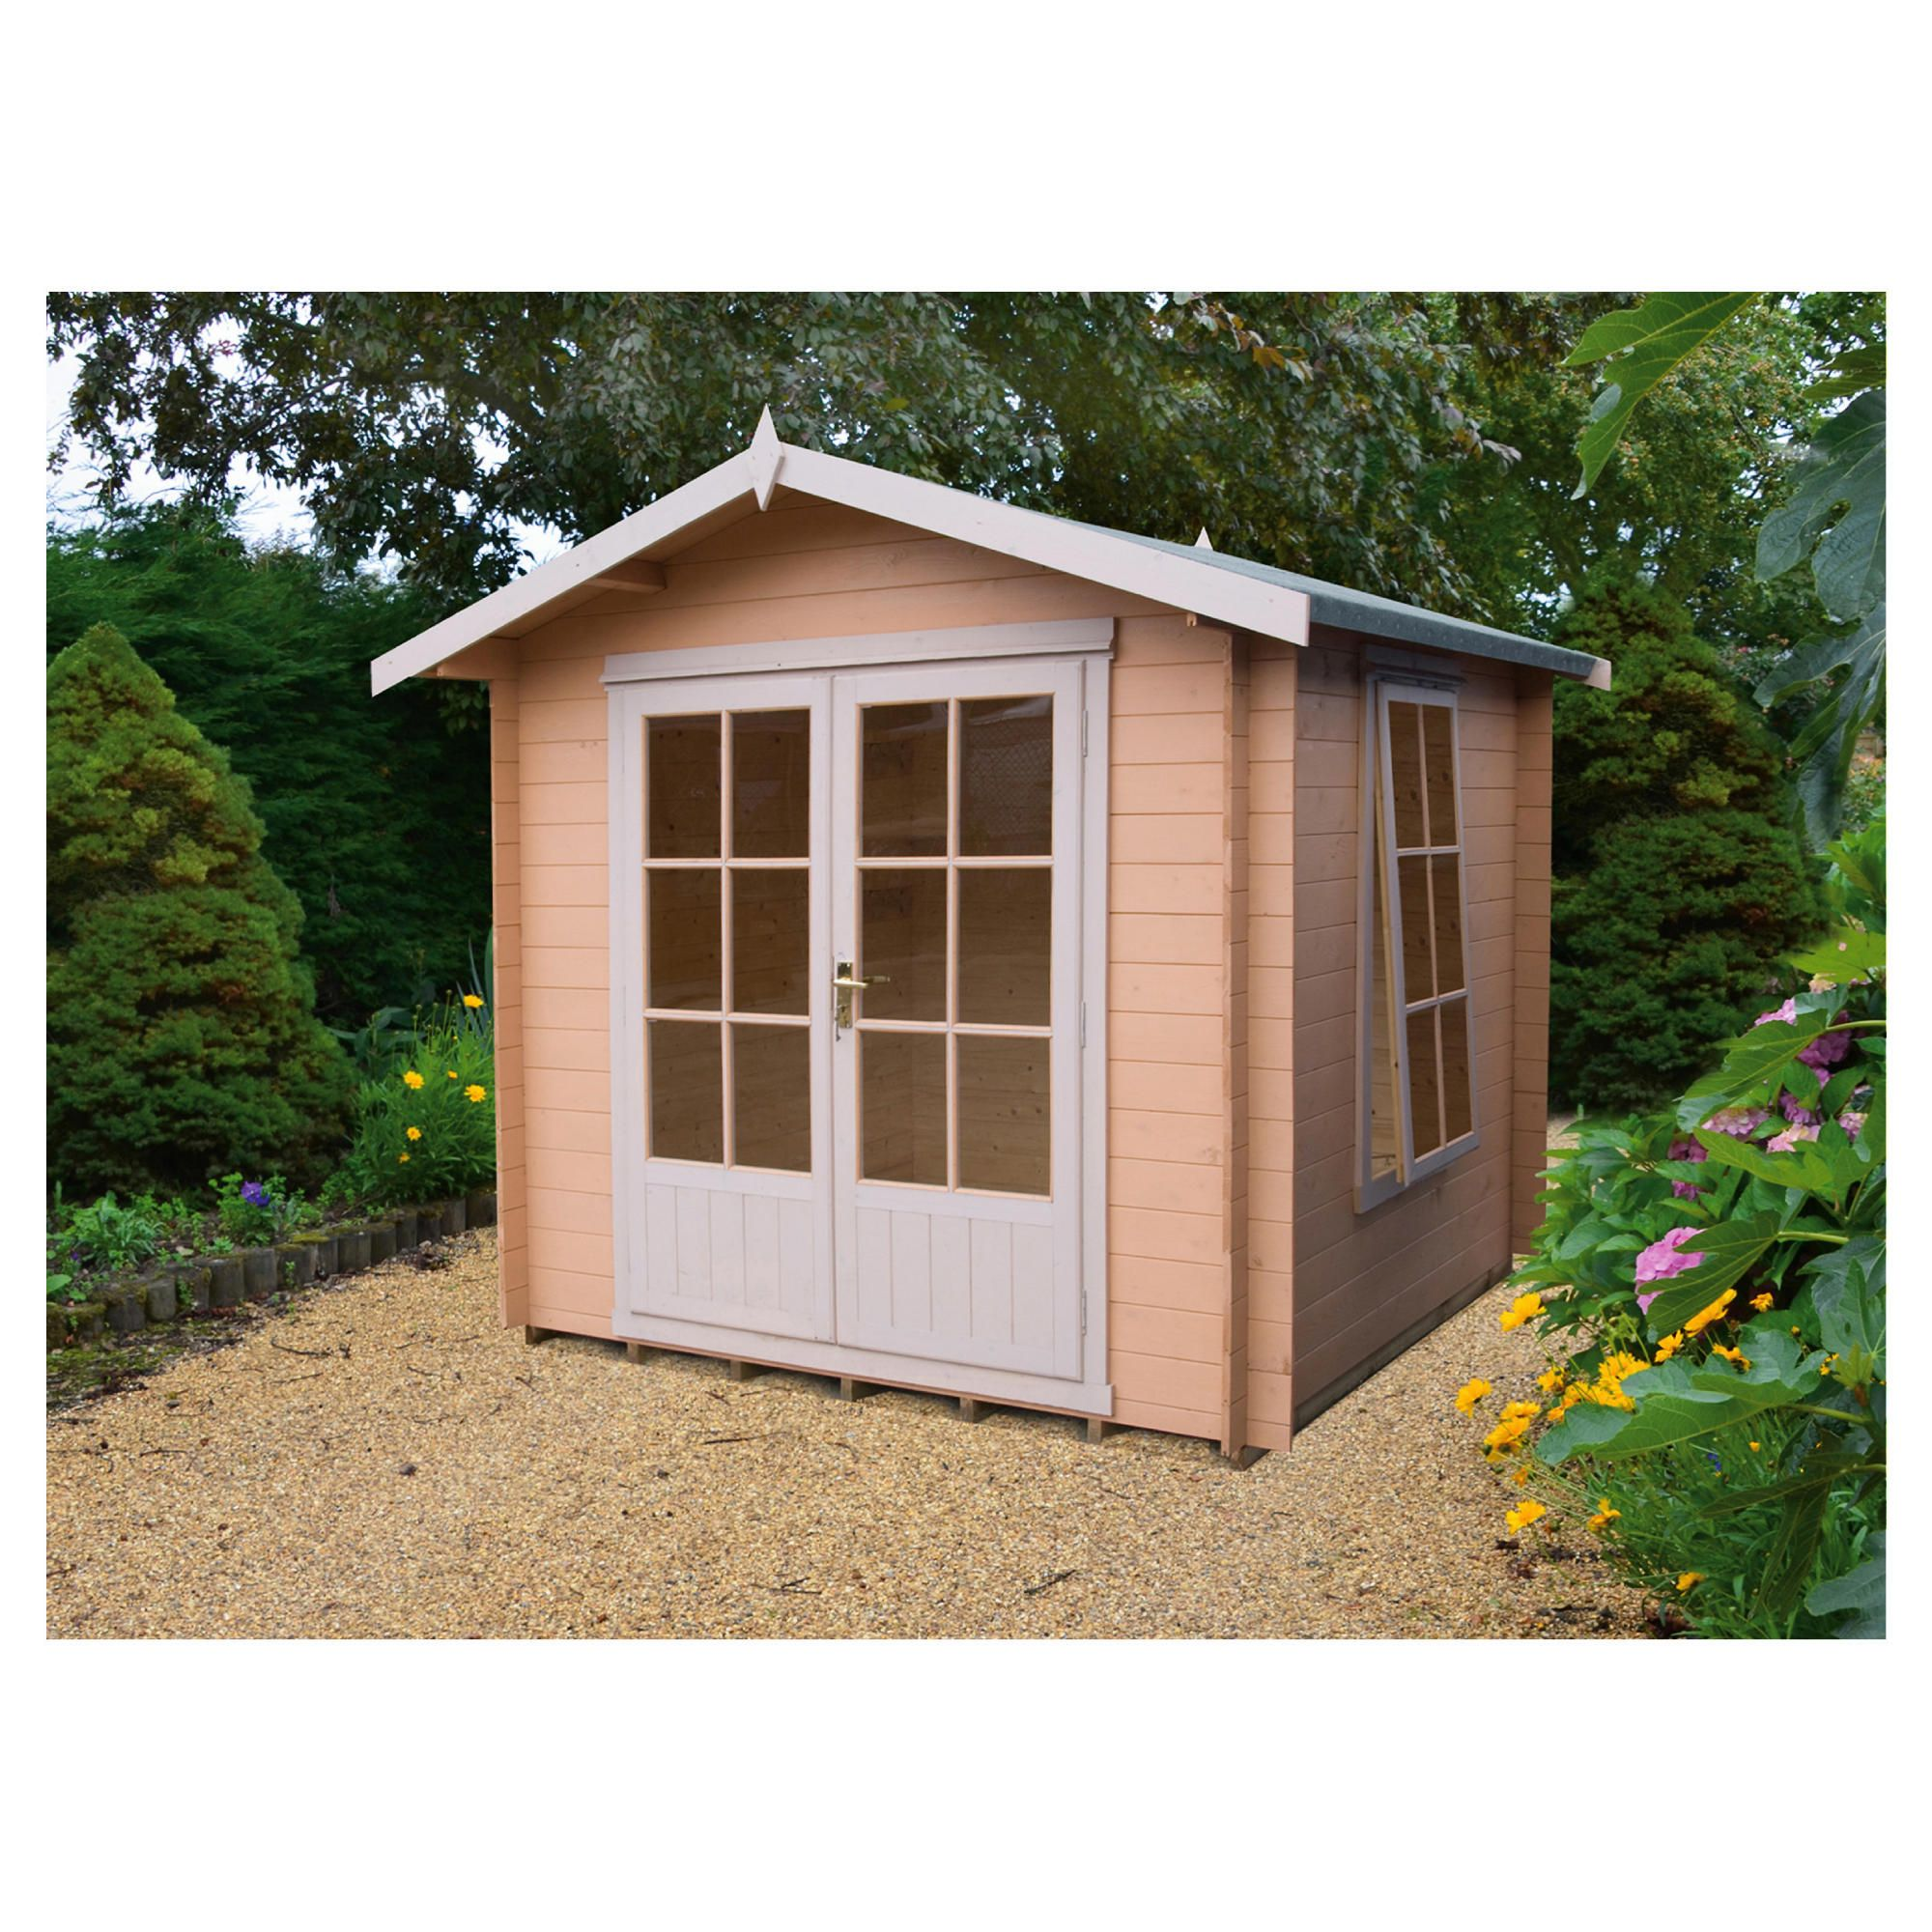 Finewood Barnsdale Log Cabin 9x9 at Tesco Direct